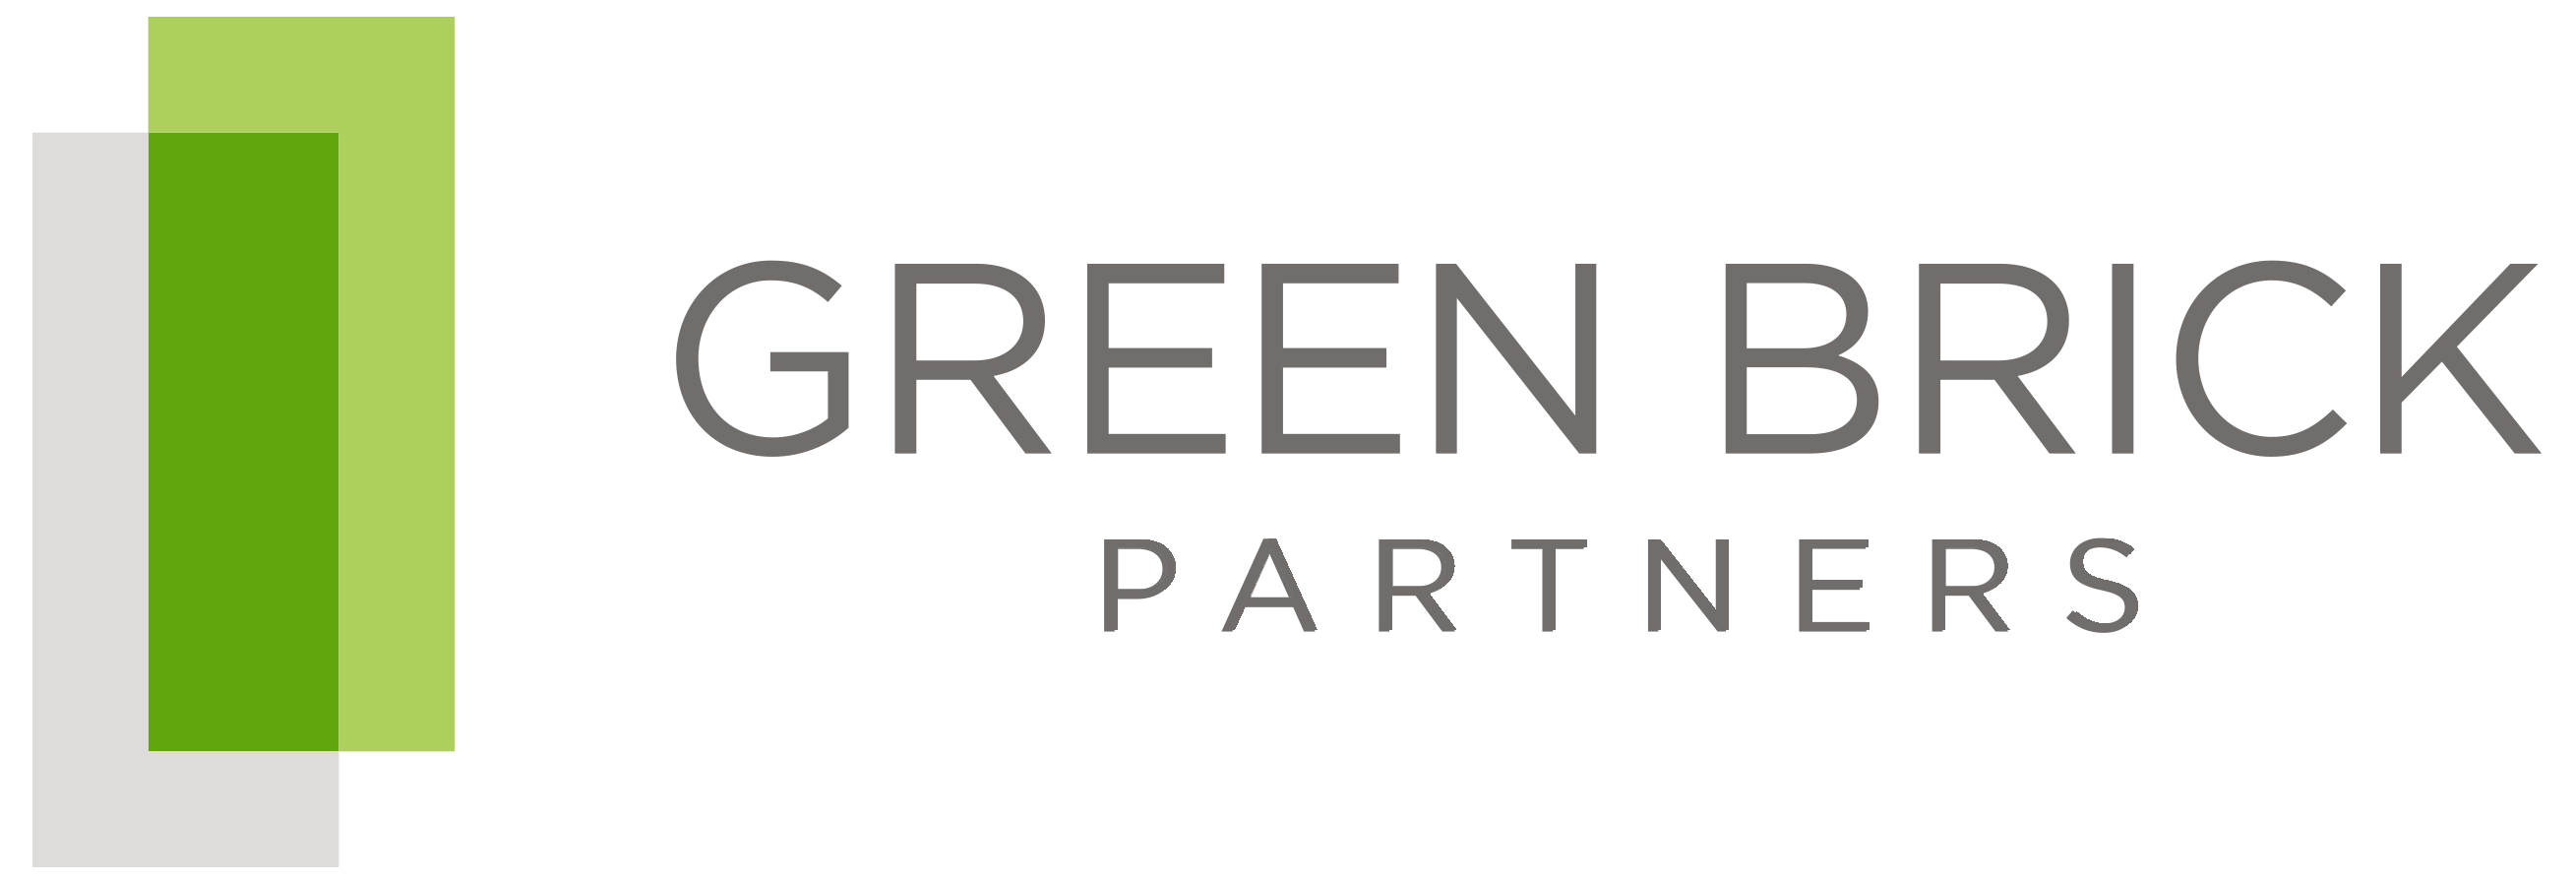 green-brick-partners-logo for web.png